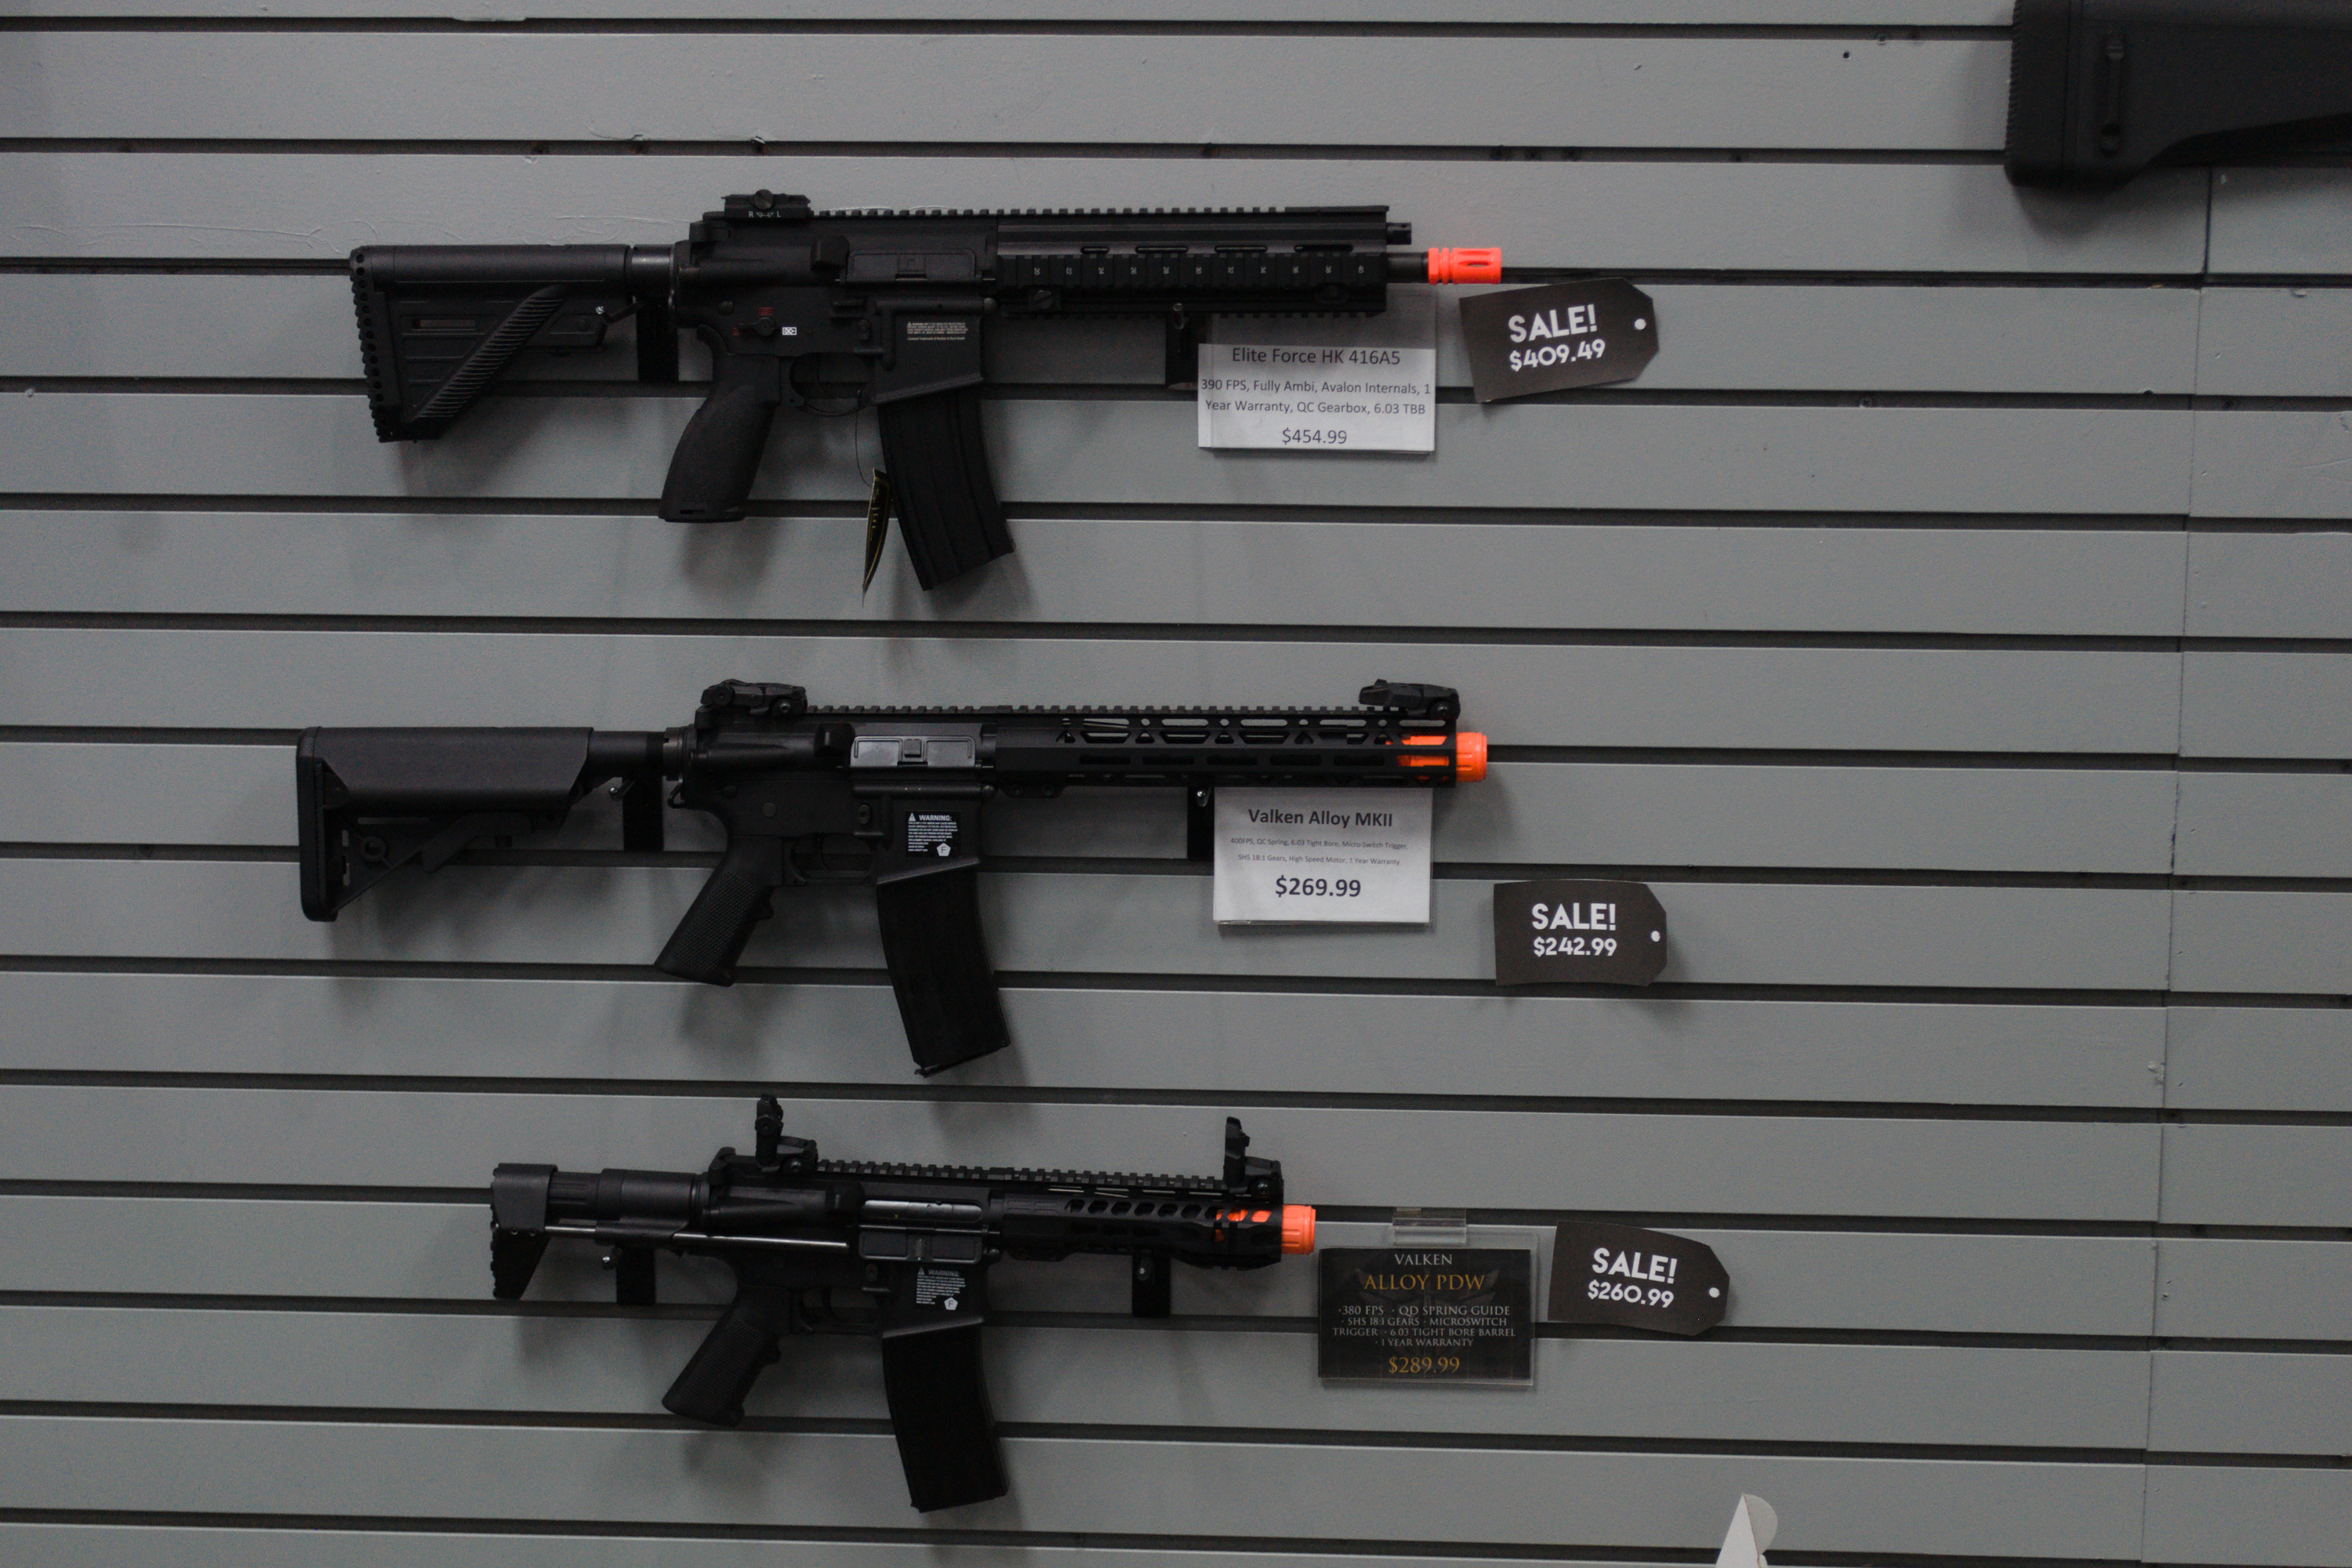 It Is Hard For Kids To Tell Toy Guns From Real Guns, And That Can